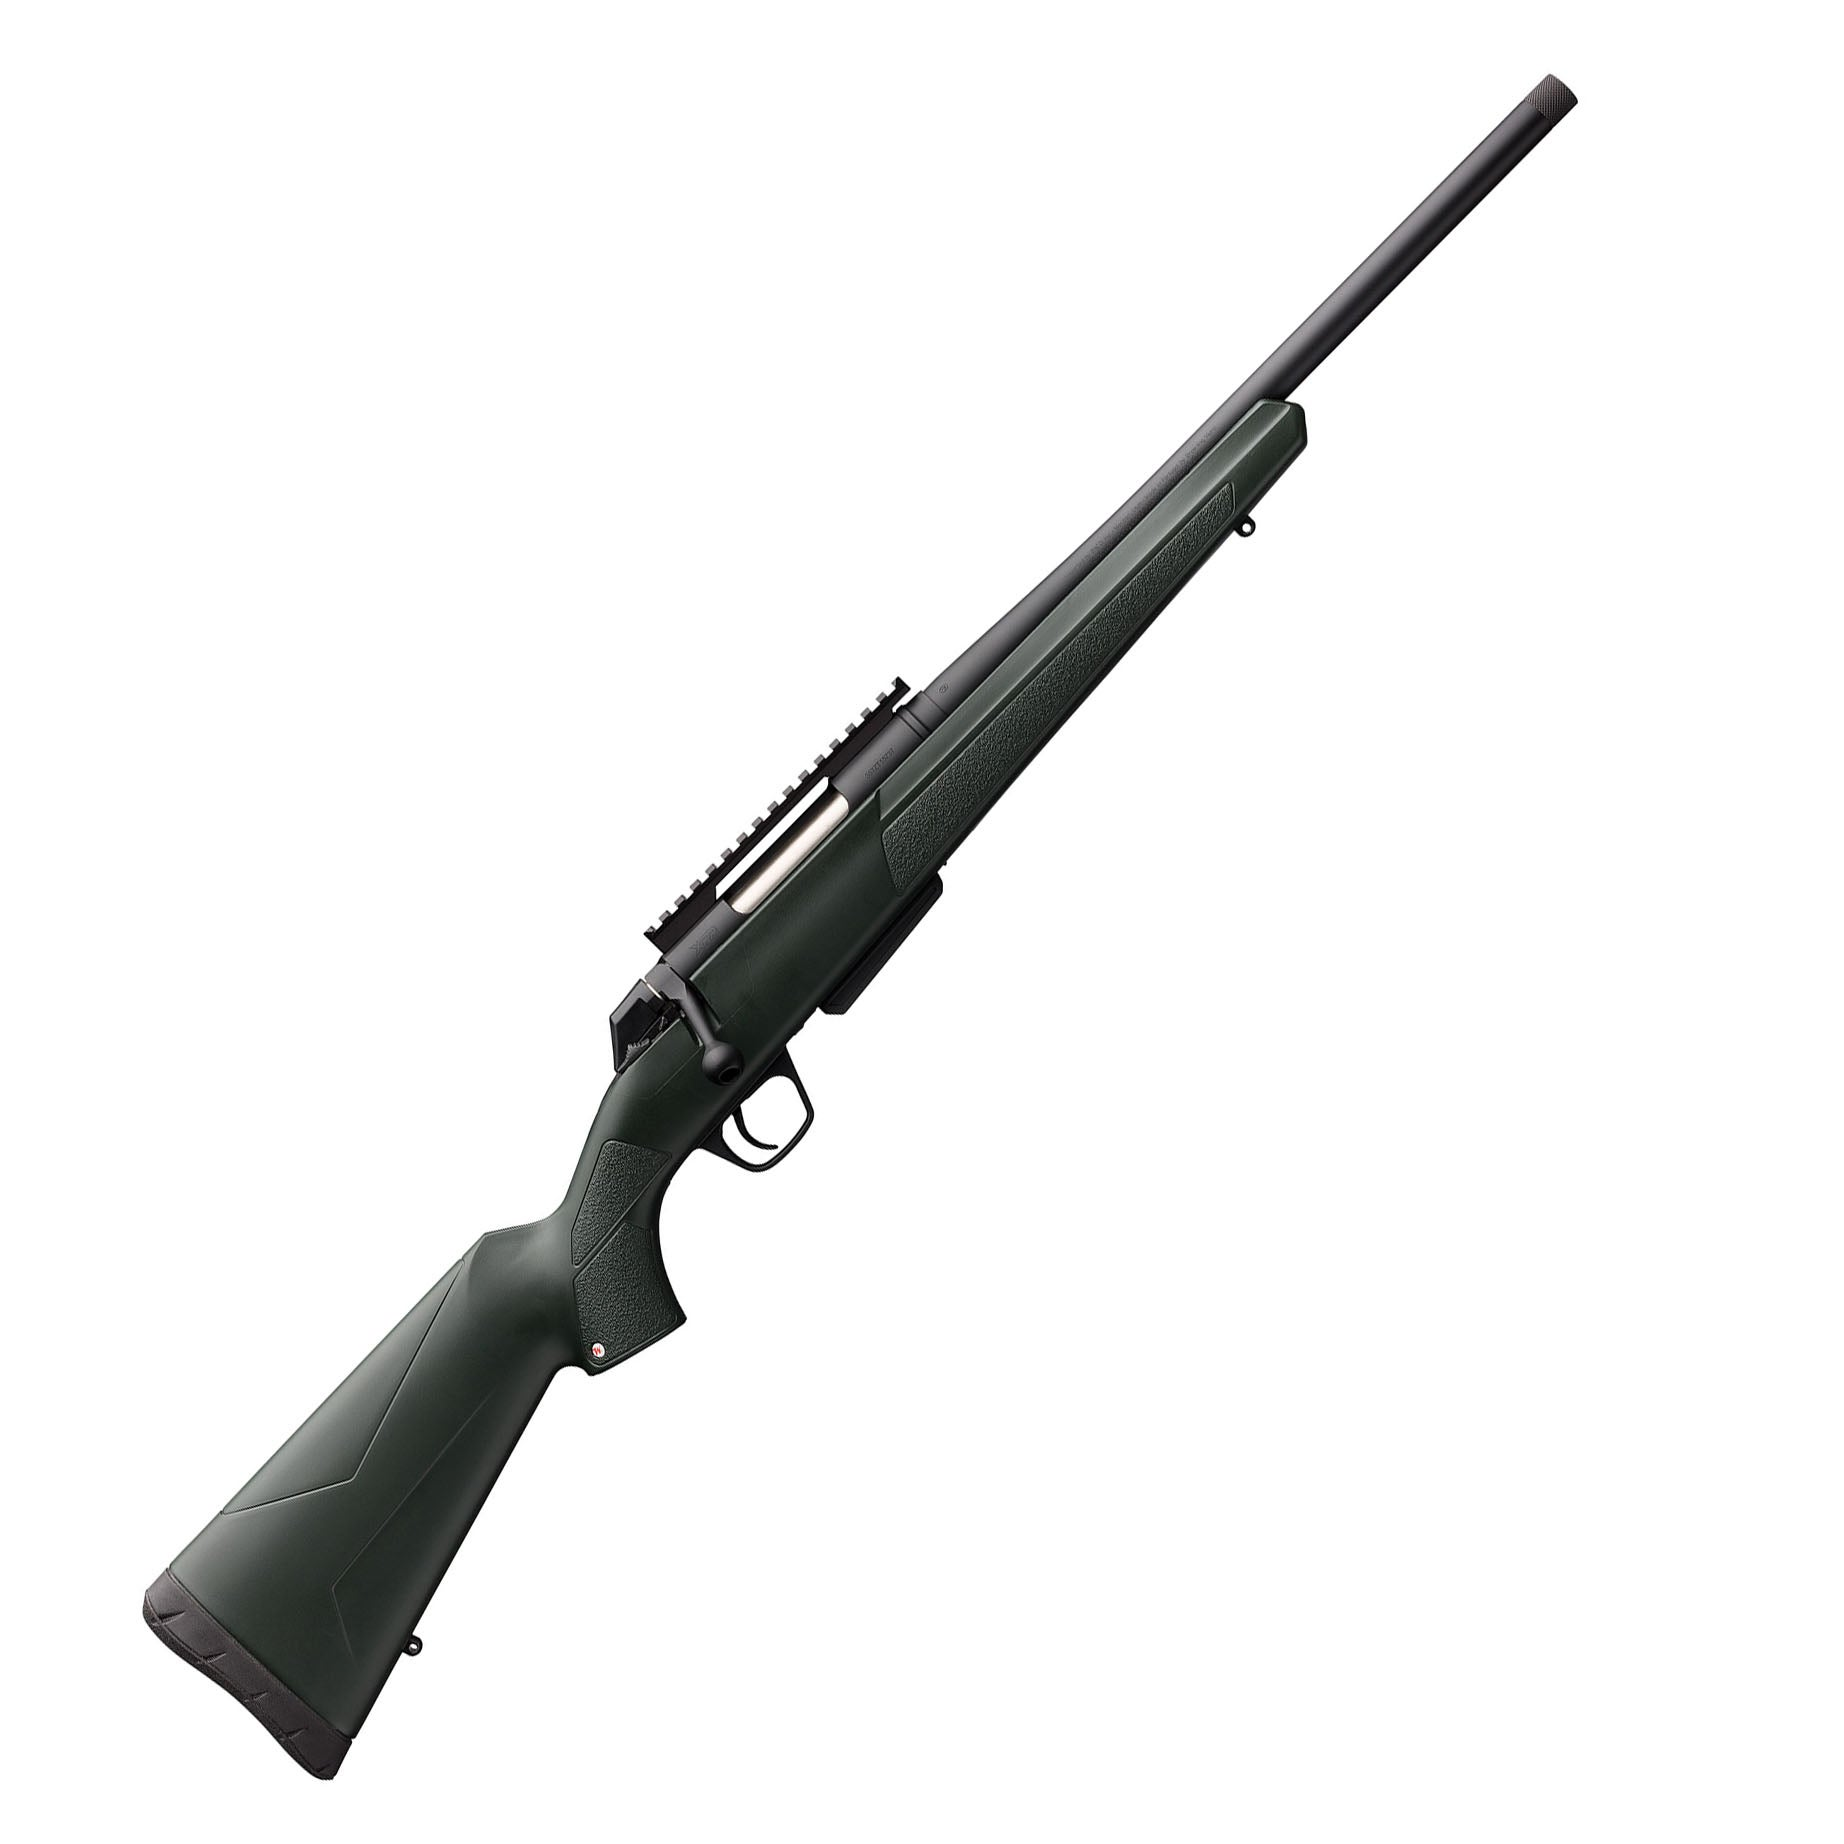 First Look: The Winchester XPR Stealth Bolt-Action Rifle